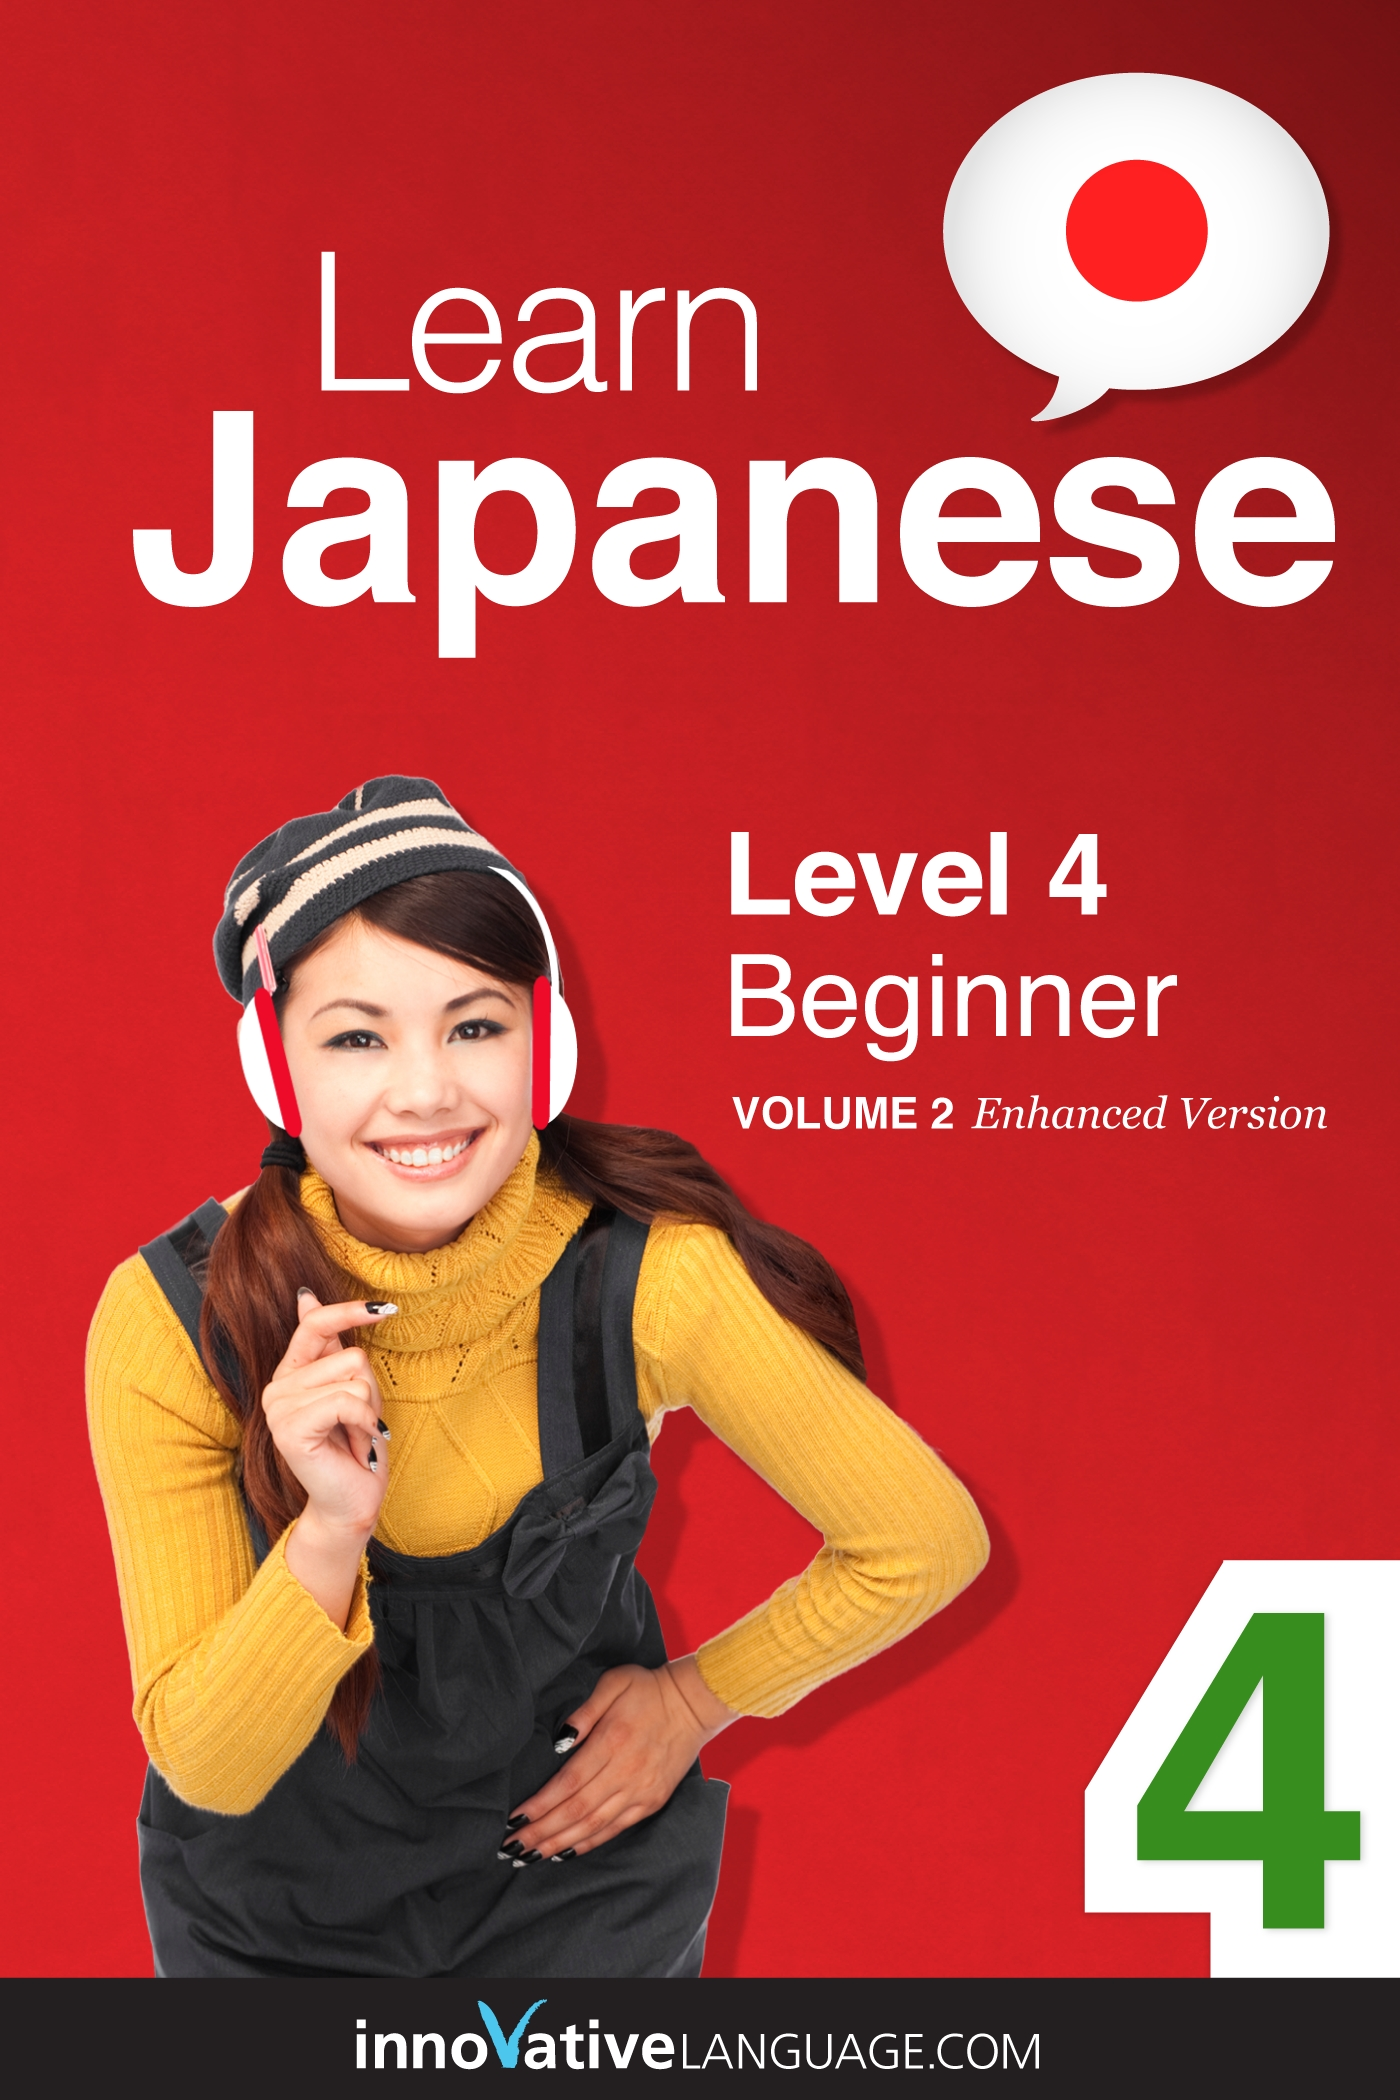 [eBook] Learn Japanese - Level 4: Beginner, Volume 2